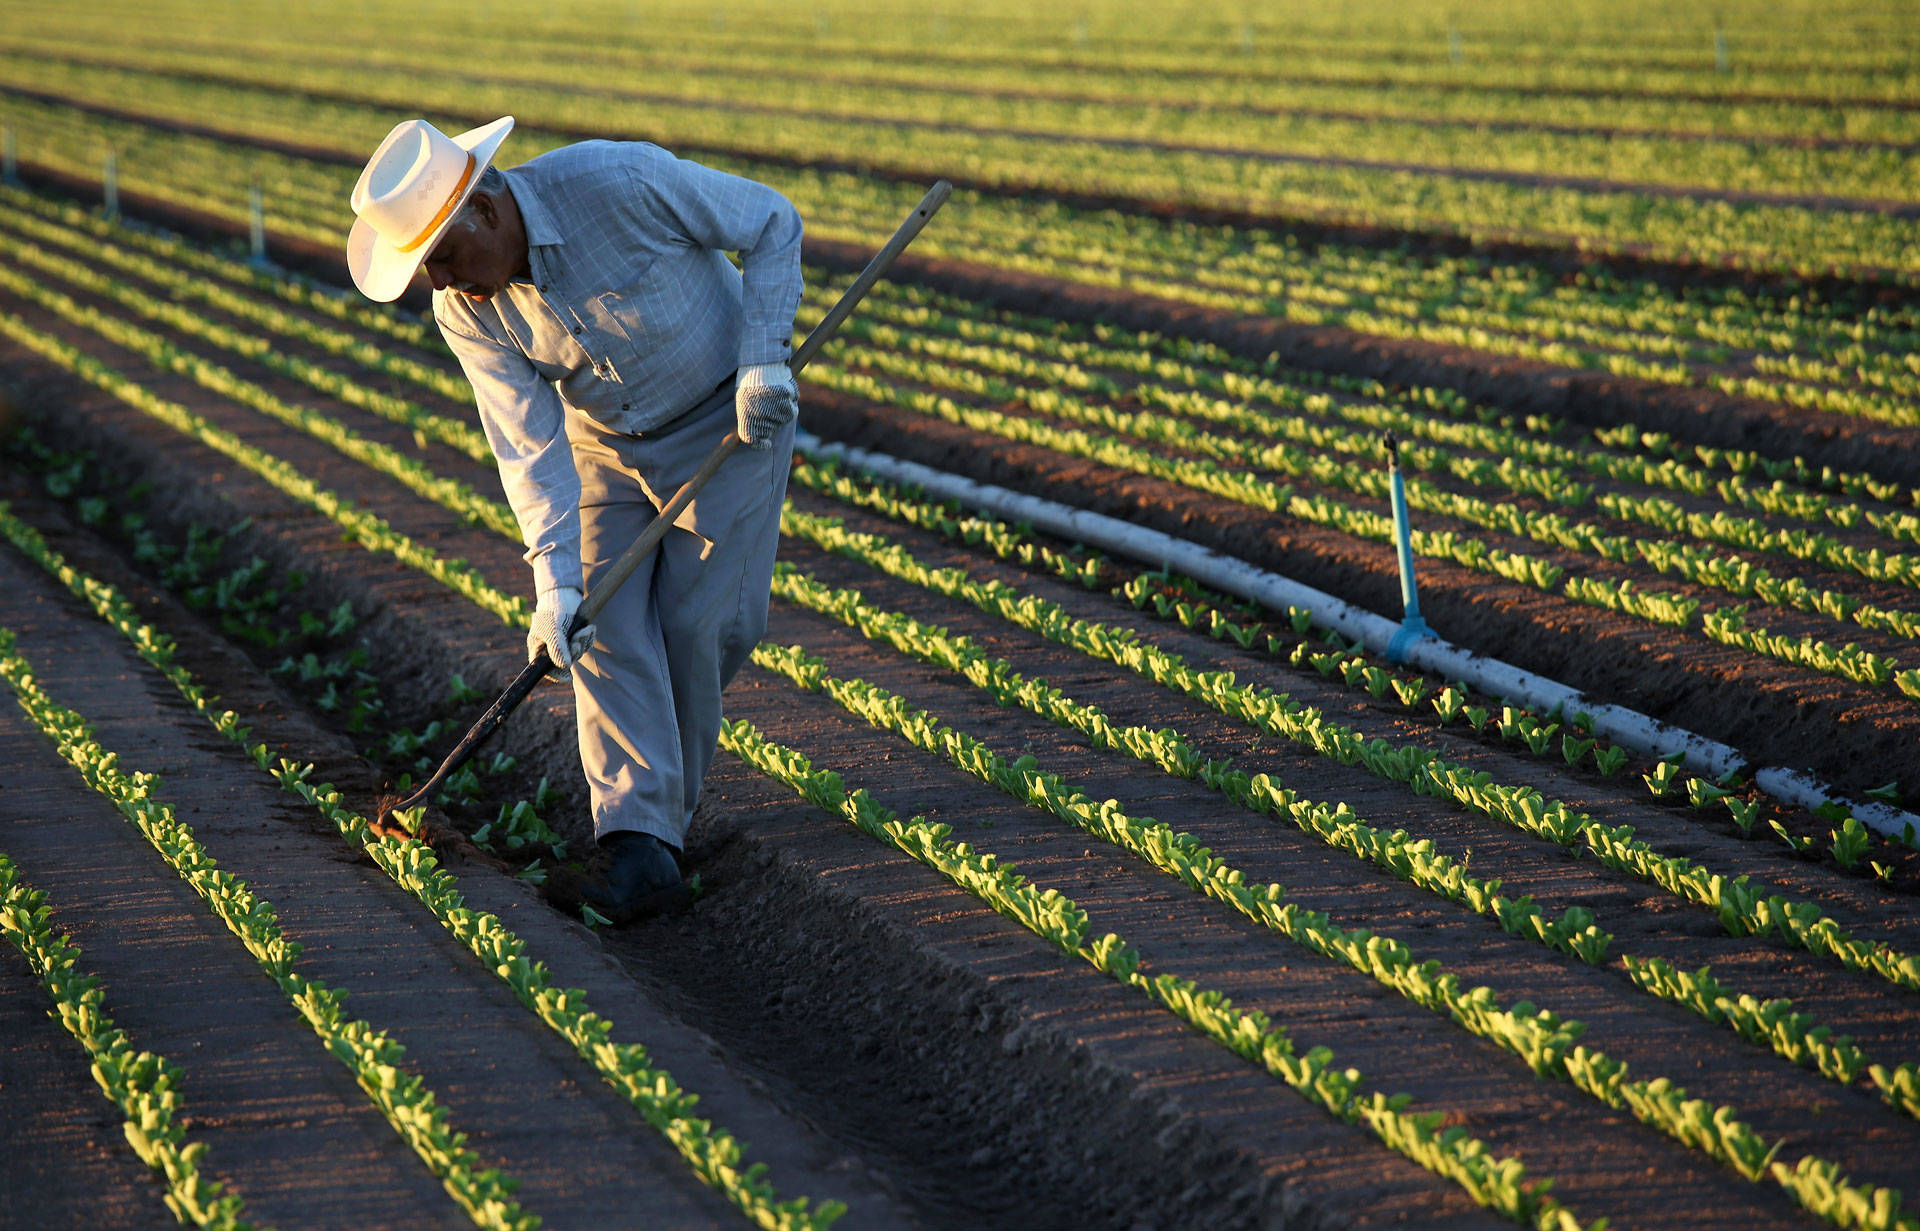 A farmworker cultivates lettuce in October 2013 in the Imperial County town of Holtville. John Moore/Getty Images